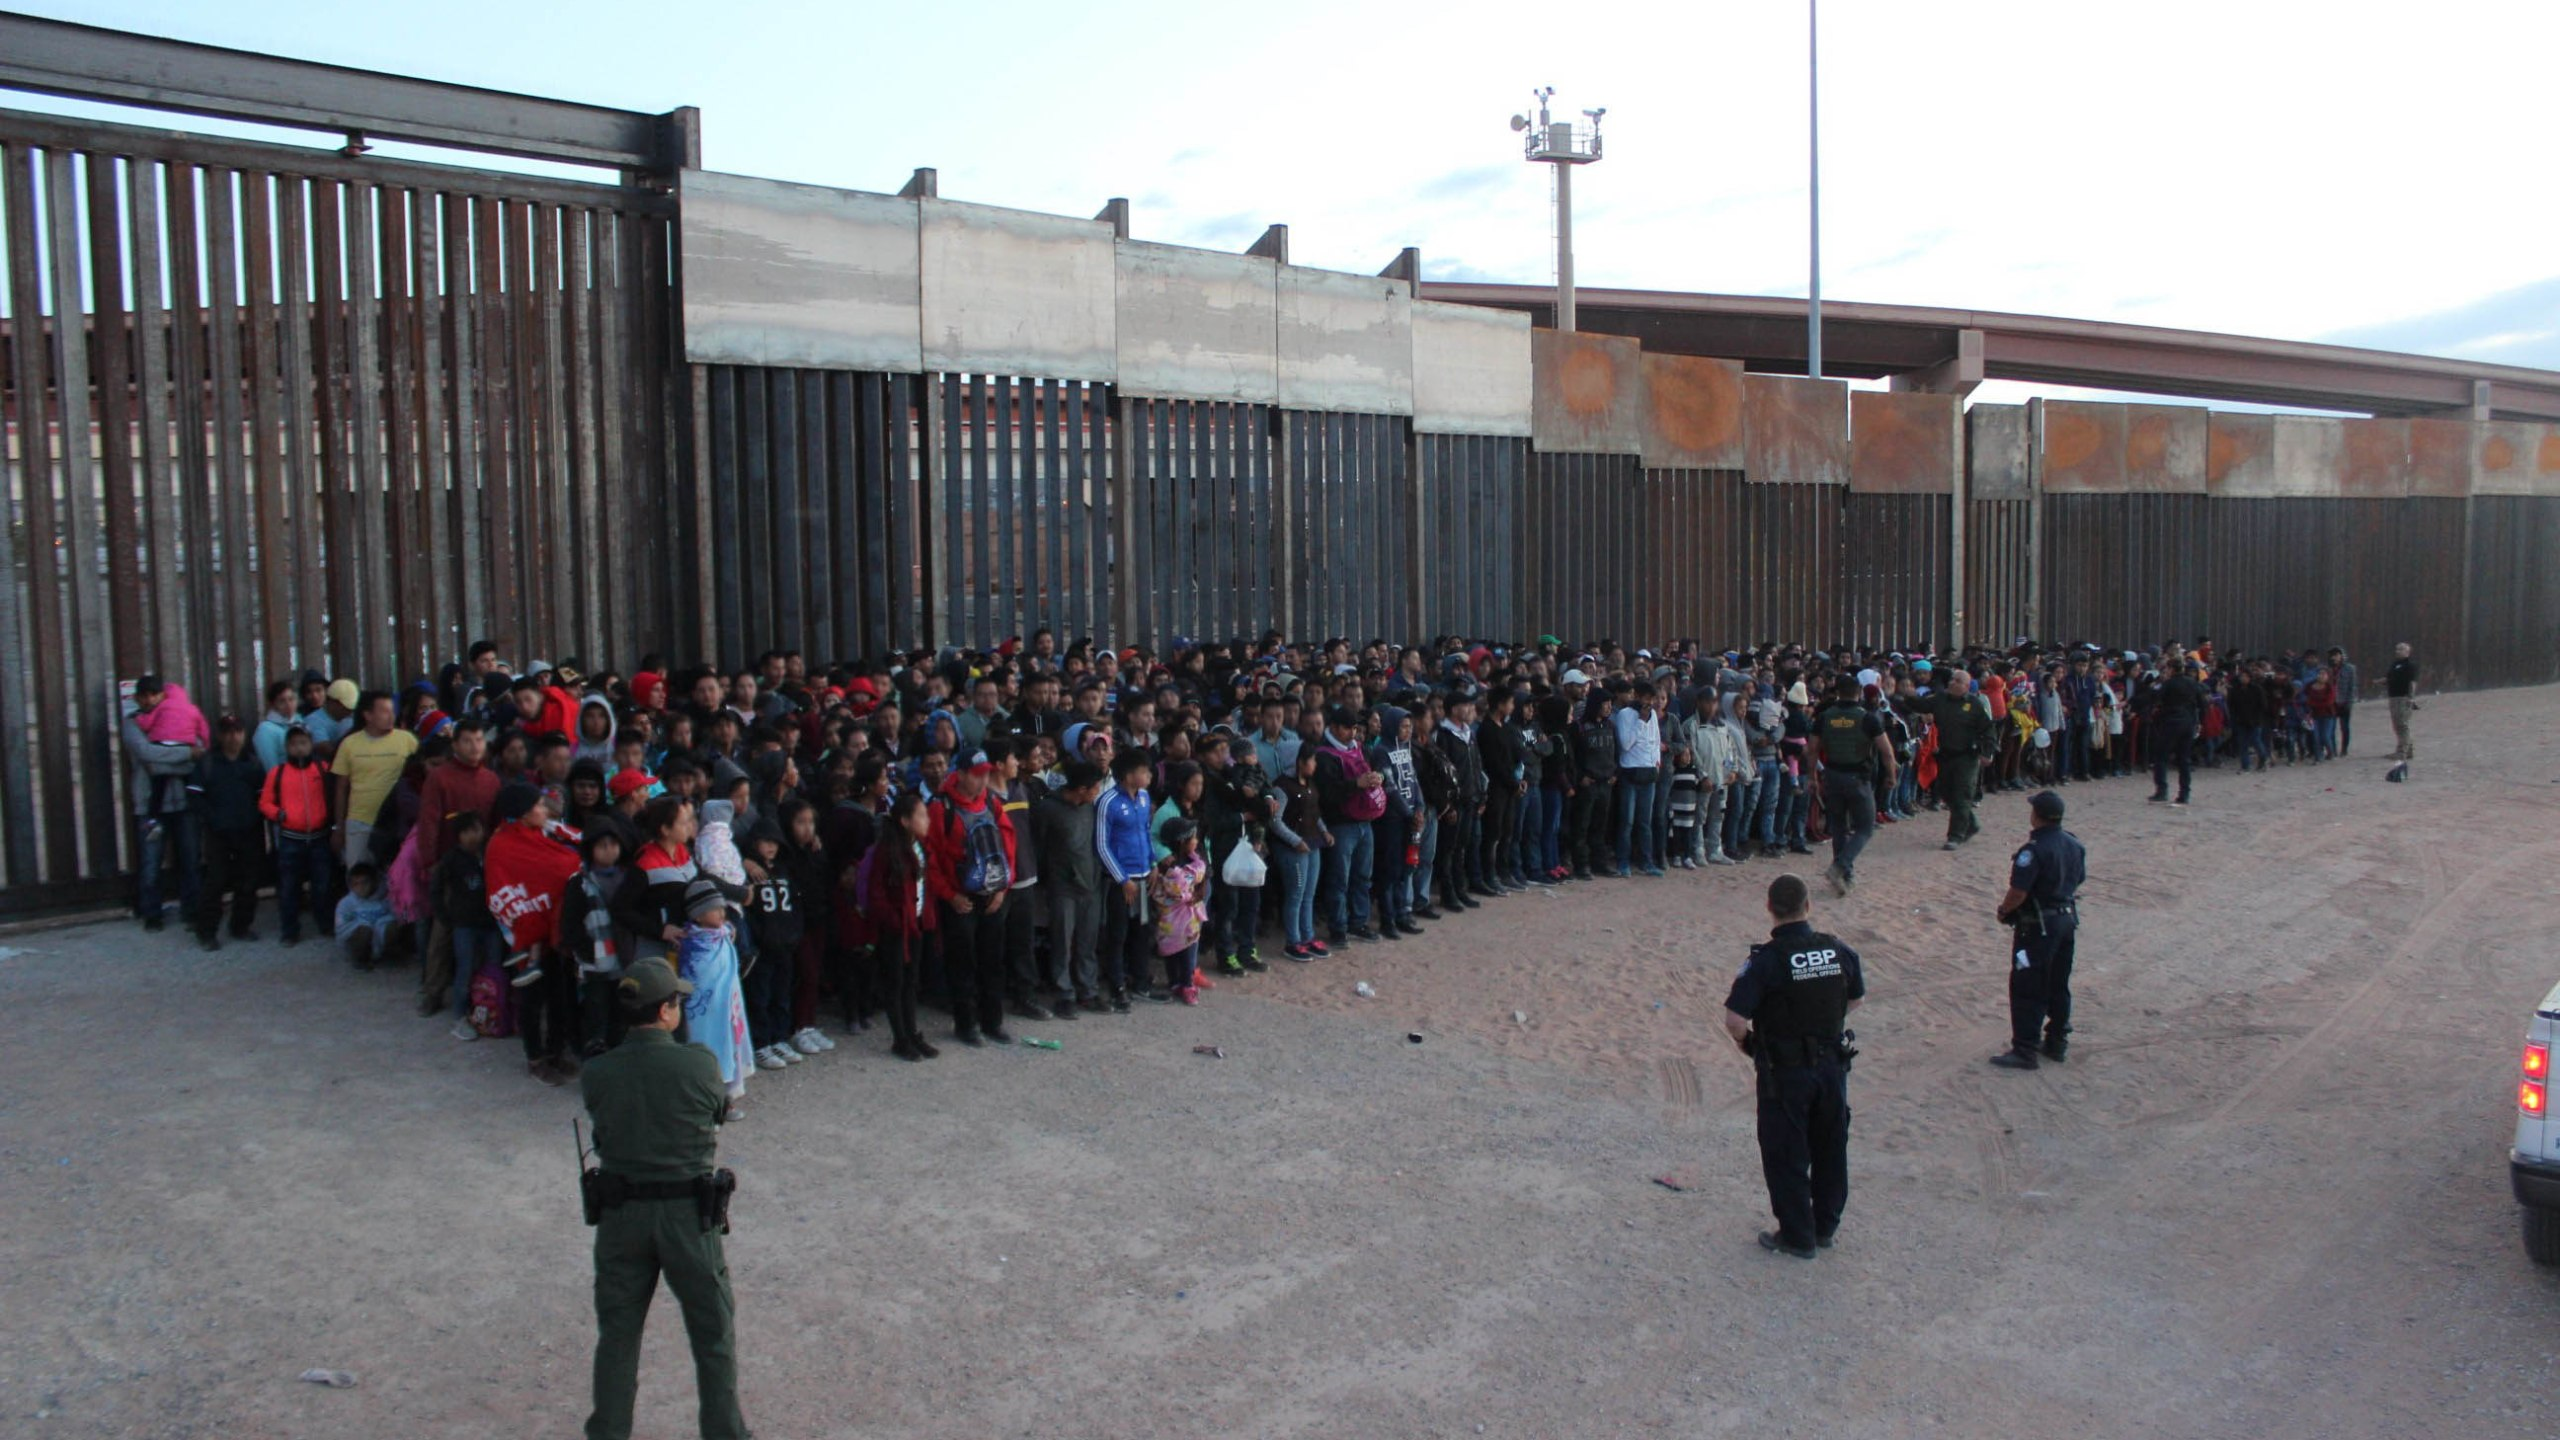 This May 29, 2019, photo released by U.S. Customs and Border Protection shows some of 1,036 migrants who crossed the U.S.-Mexico border in El Paso, Texas, the largest that the Border Patrol says it has ever encountered.